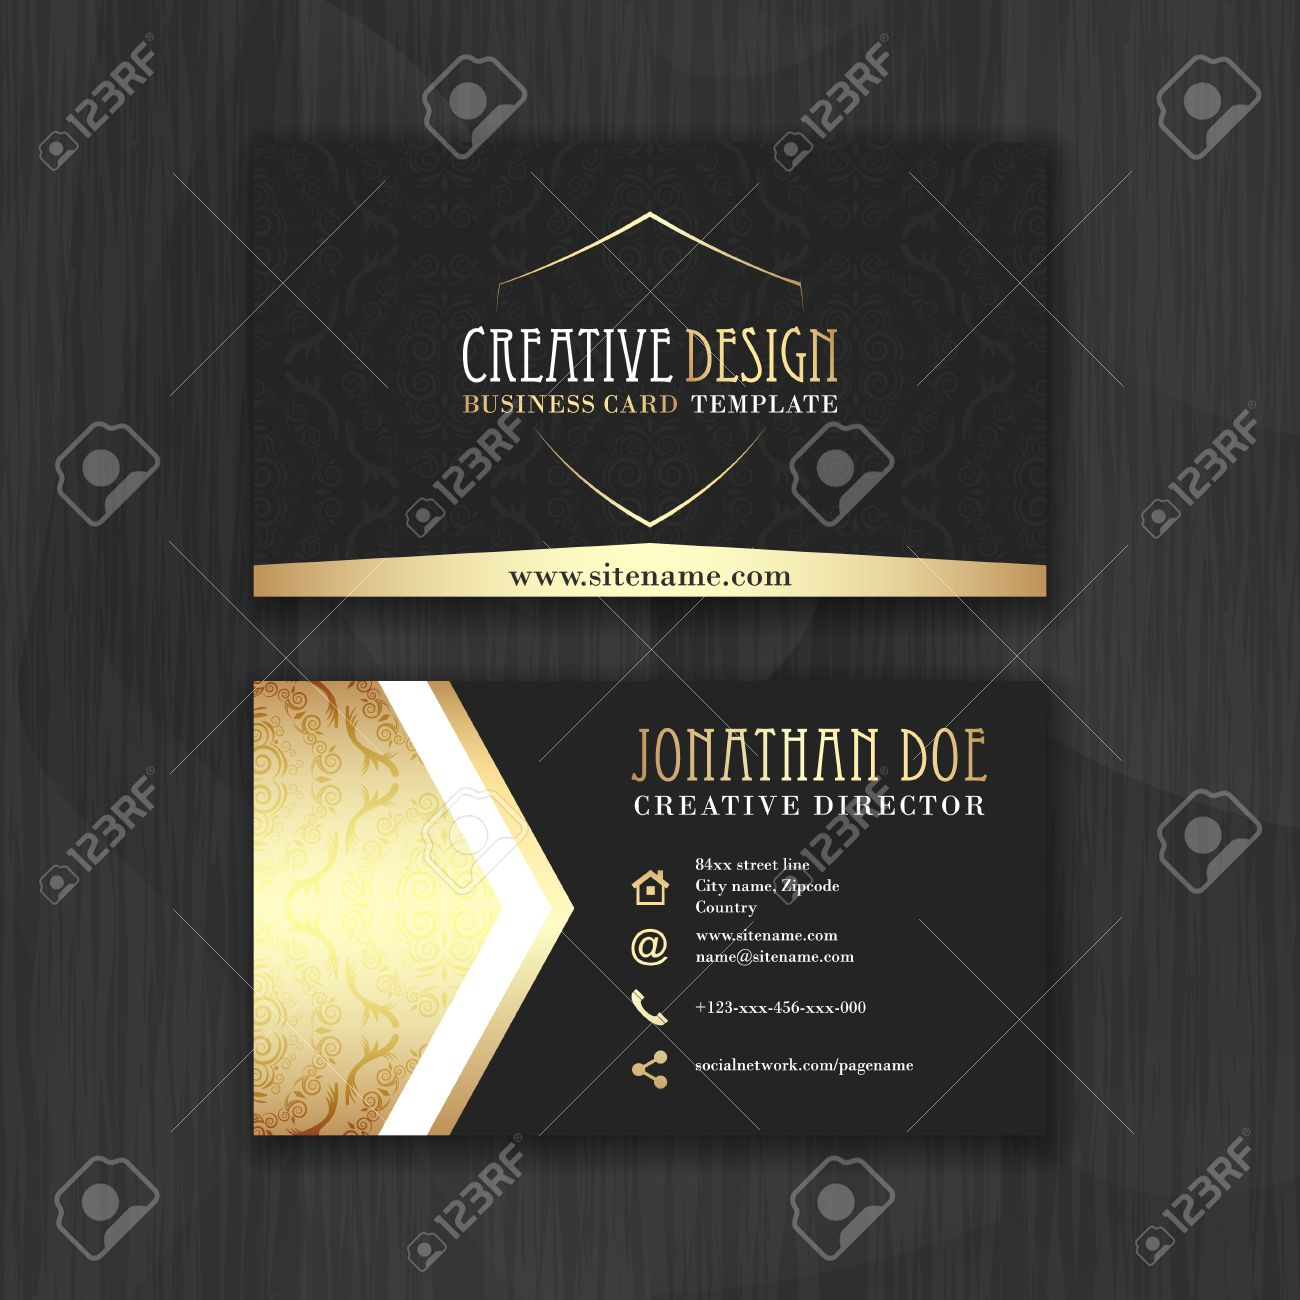 Gold And Black Horizontal Business Card Template. Design For ...